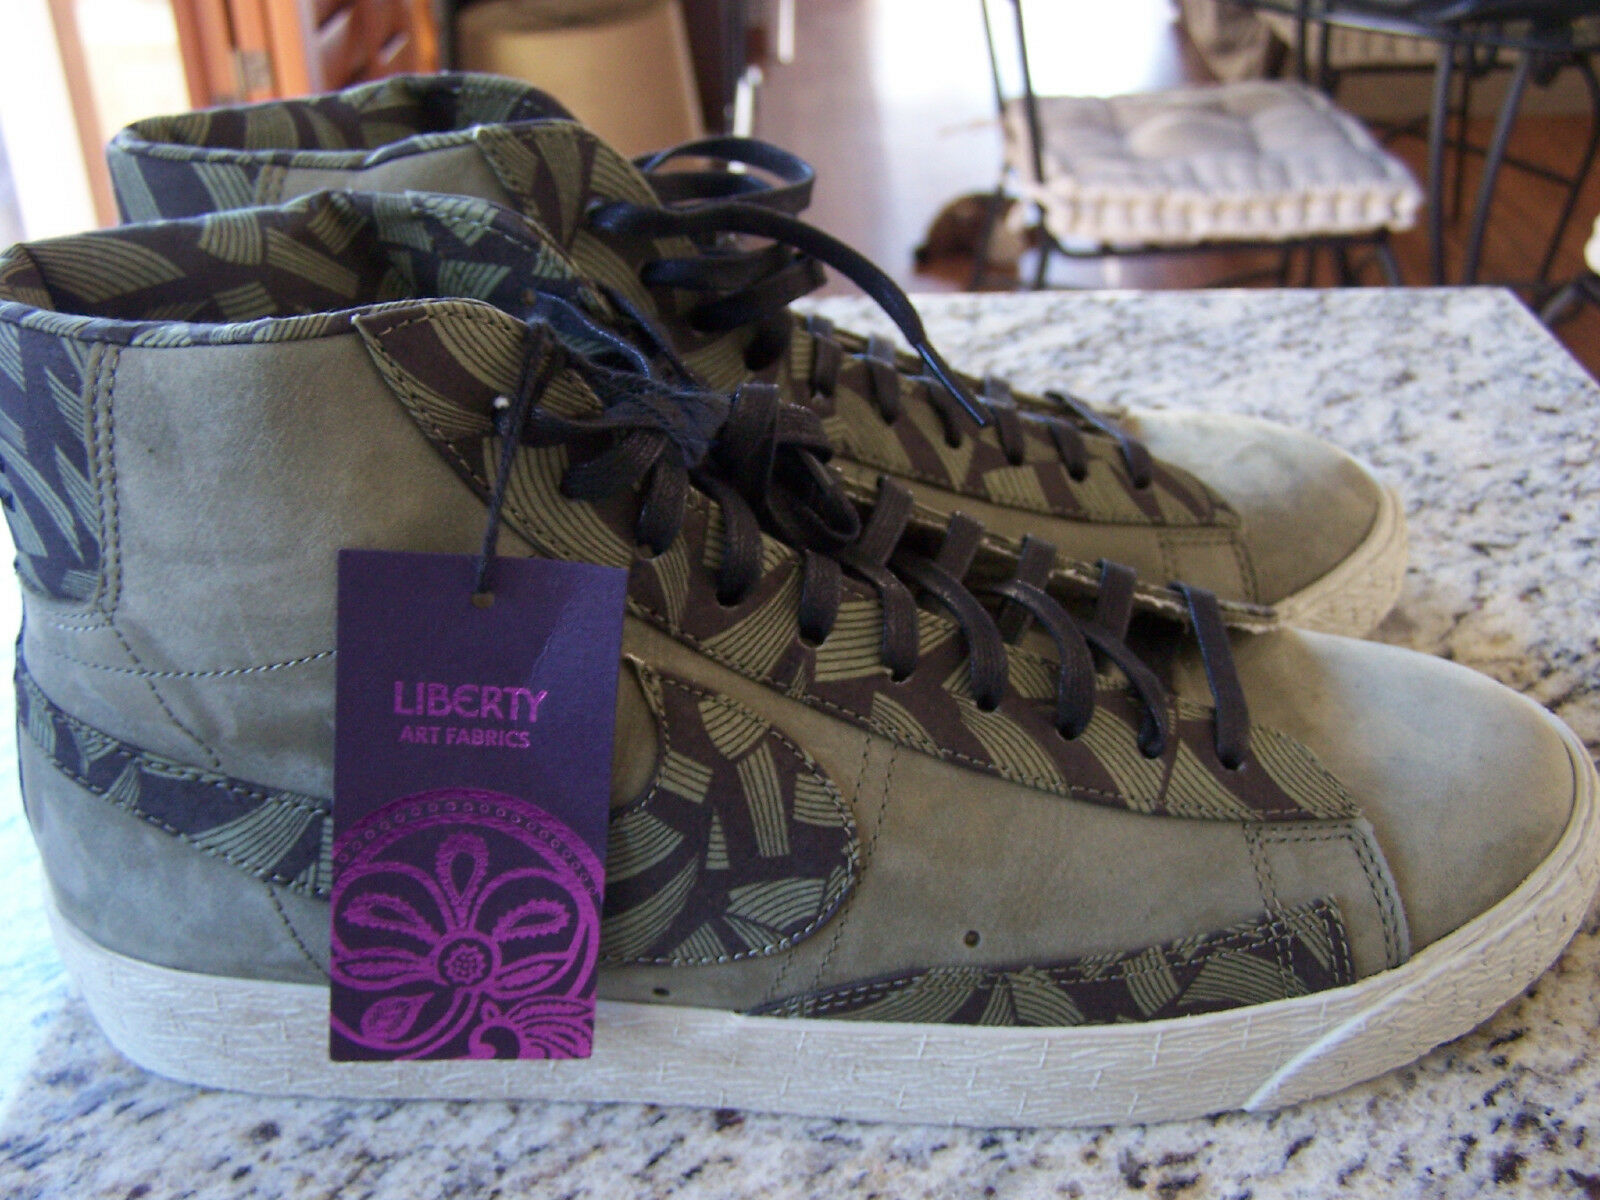 les tissus nike liberty art baskets nike tissus taille 9.5 formateurs b52452